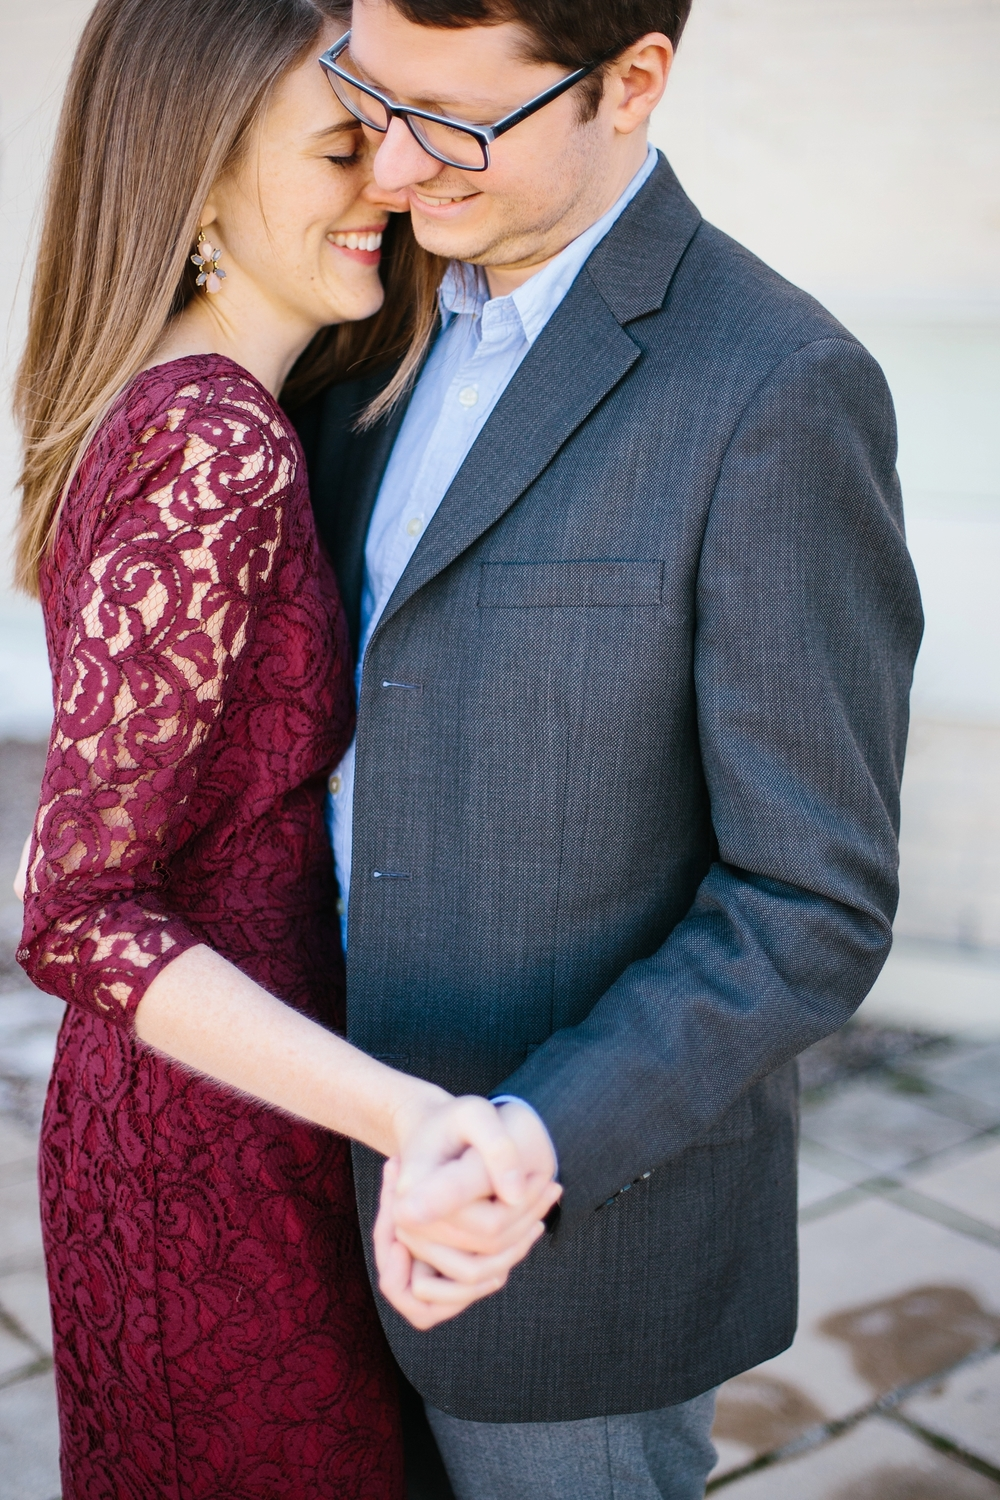 ClassicDowntownMadisonEngagementSession_0016.jpg